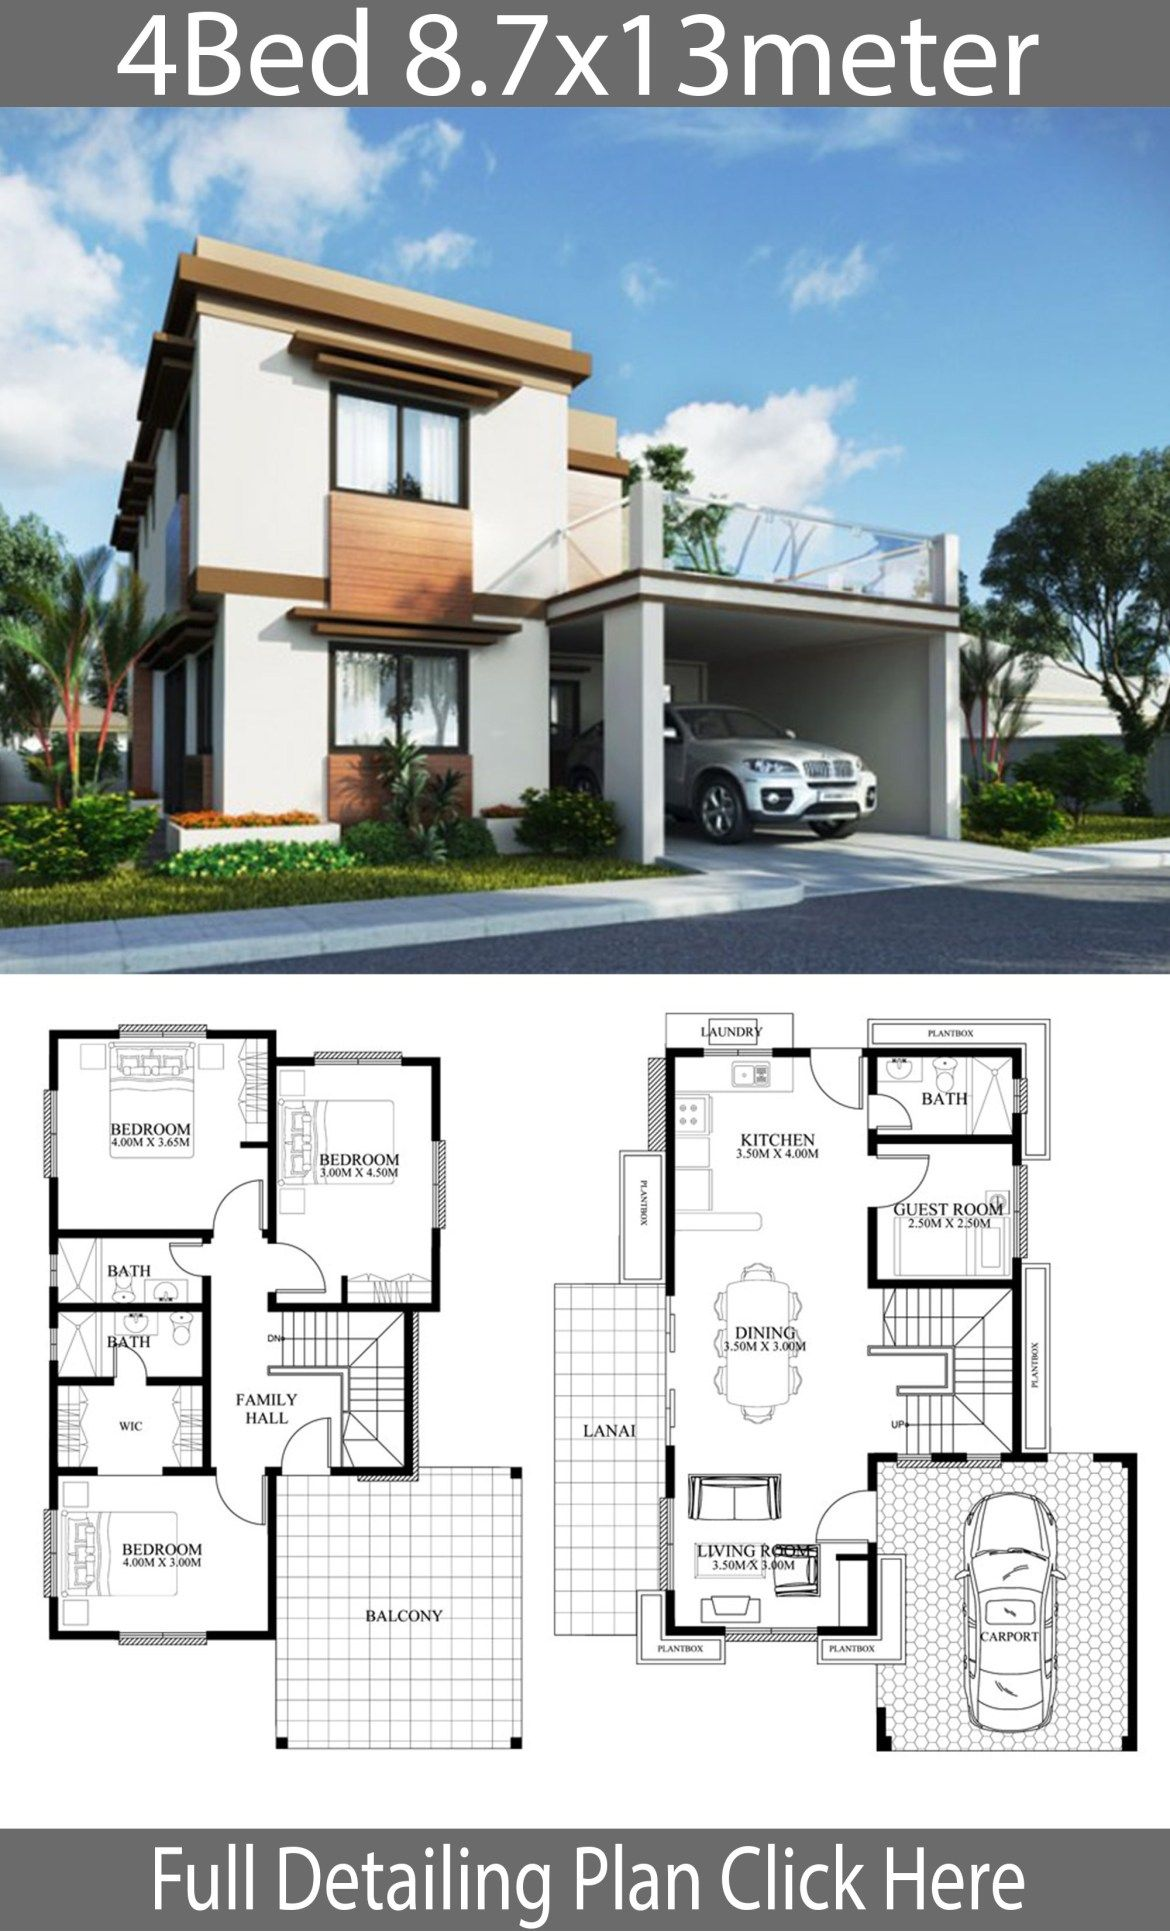 Drawing Your Own Floorplans Floor Plans House Plans Online Design Your Own Home House Floor Plans